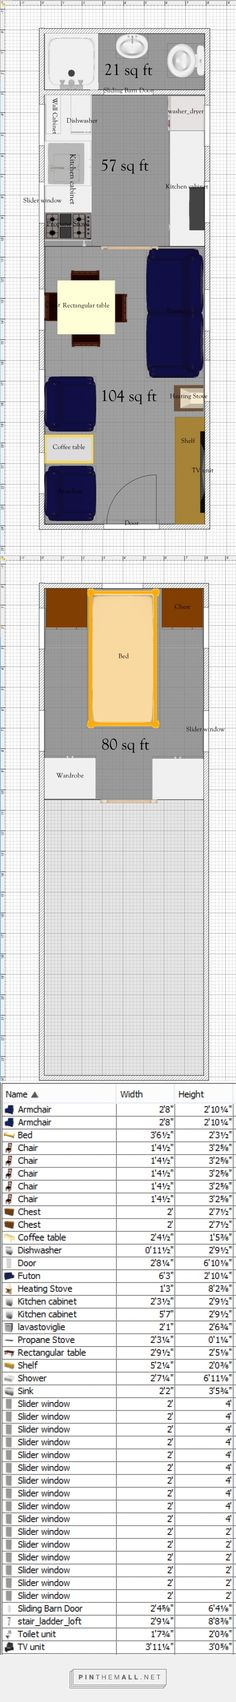 Free Tiny House Floor Plans: 8' x 24' House Plan